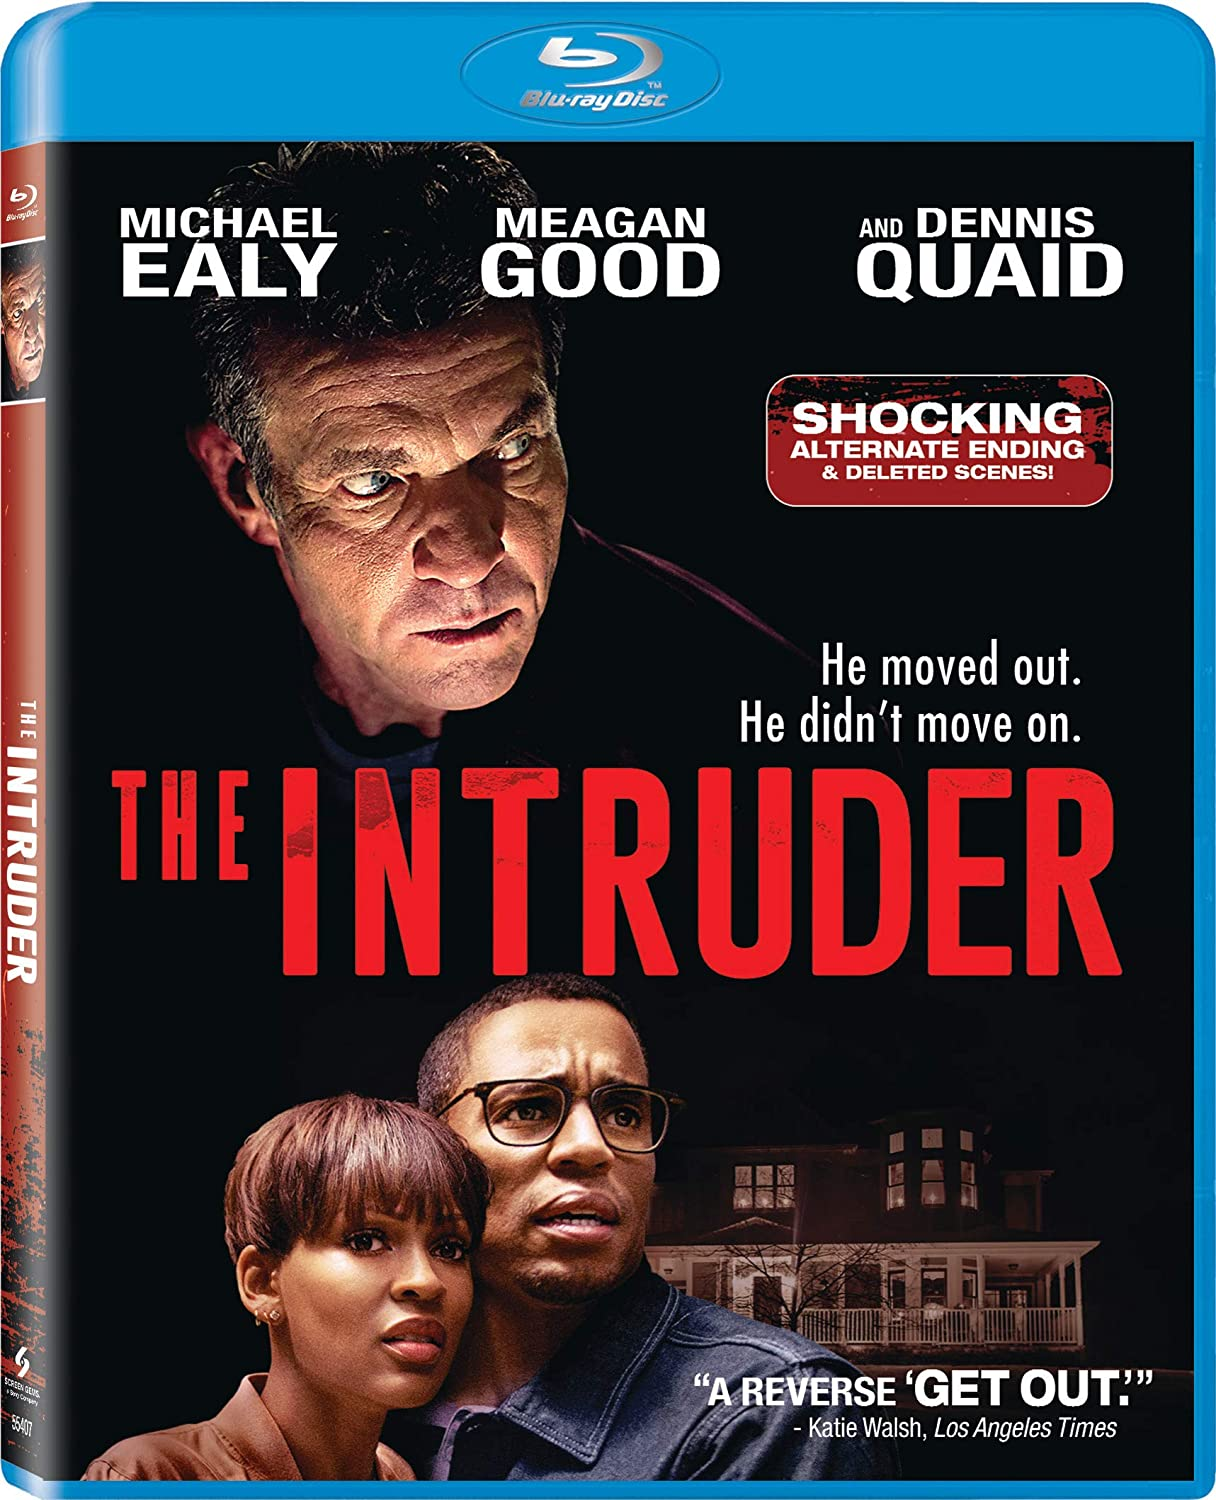 The Intruder (2019) Bluray 1080p 10bit HEVC [Org DDP 5.1 Hindi + DD 5.1 English] H265 ESubs ~RONIN~ [2.6GB] | G- Drive